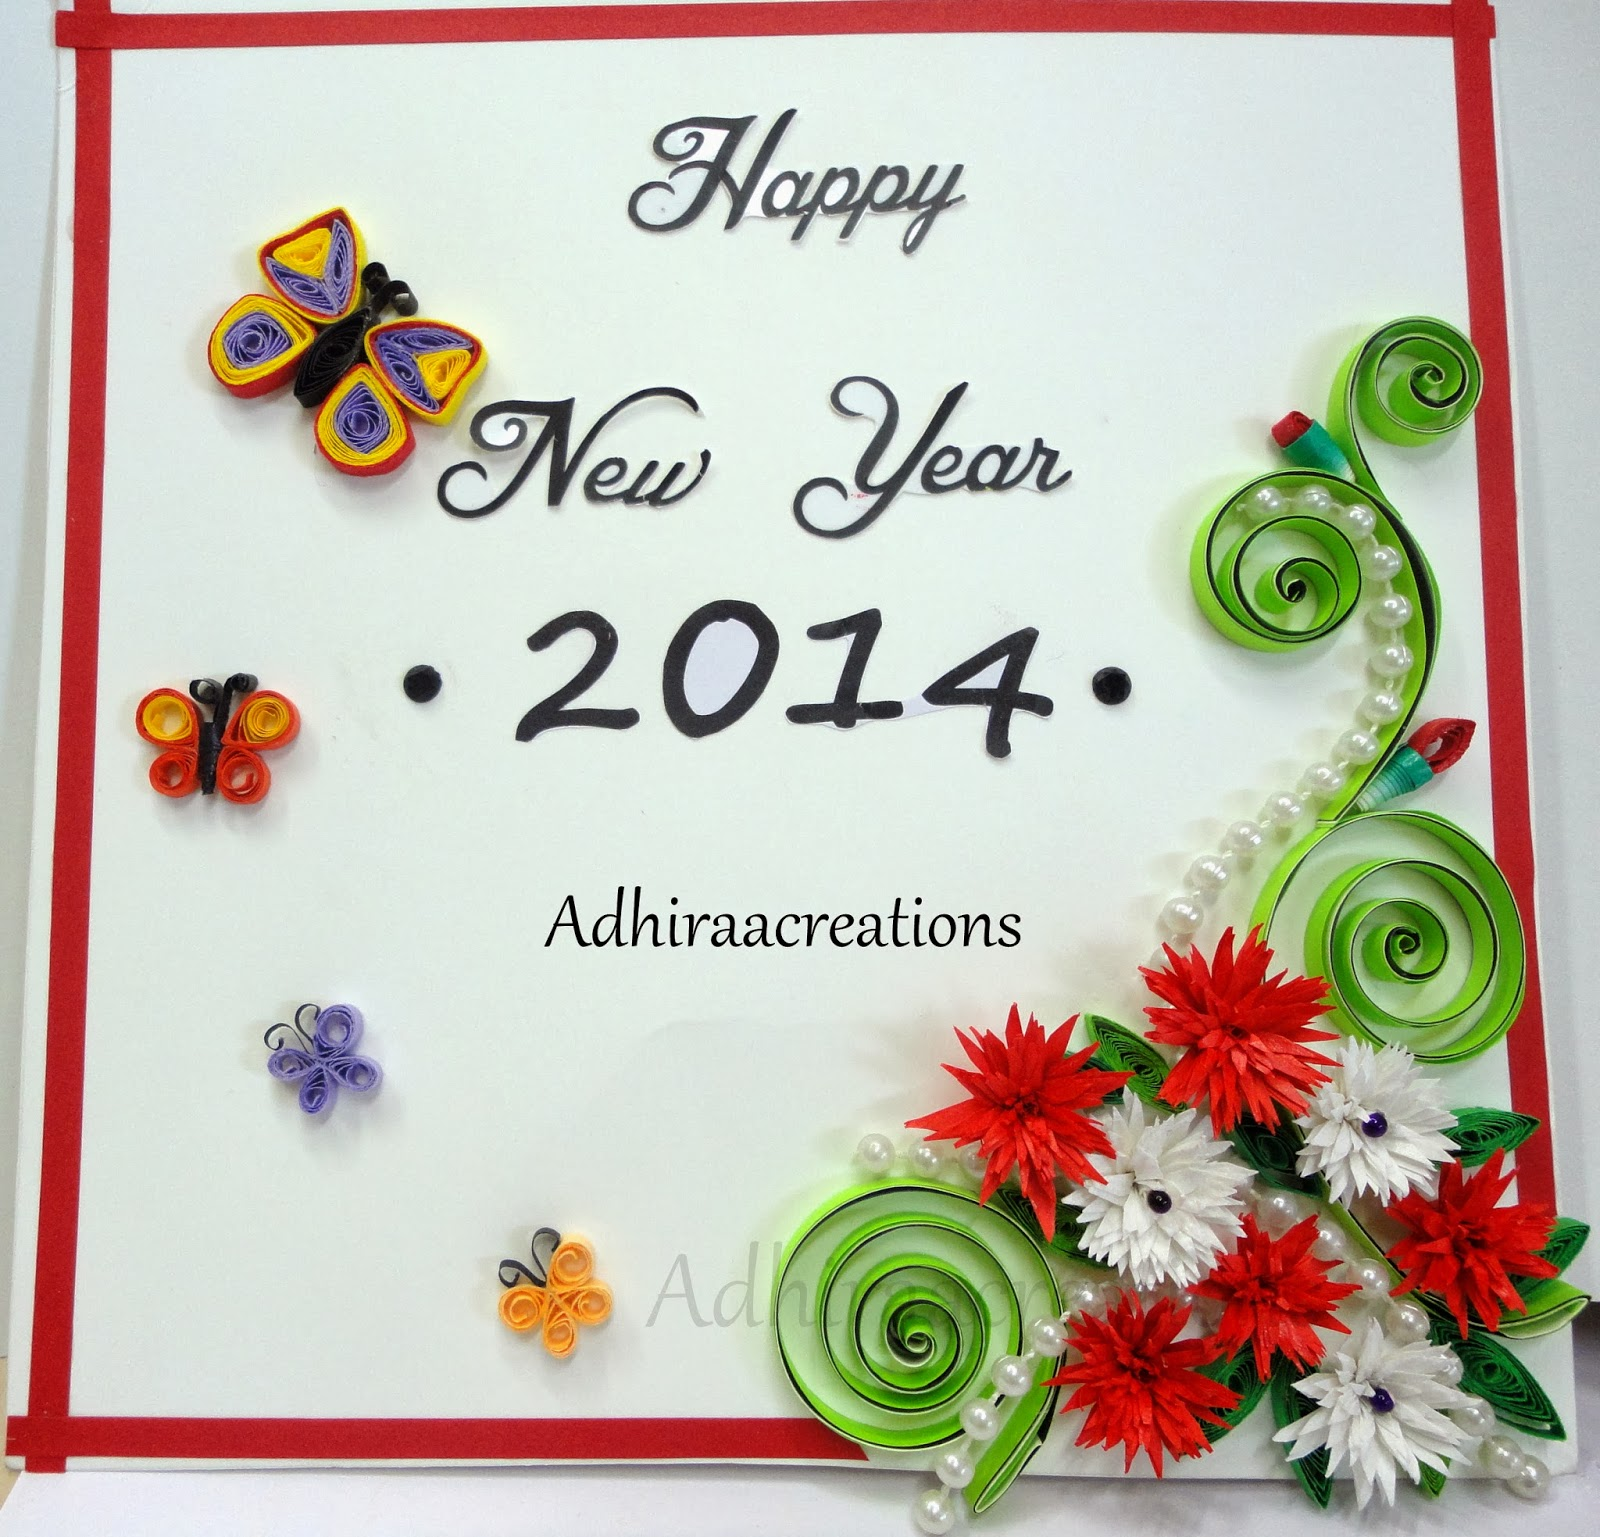 Adhiraacreations: Quilled Happy New Year wishes